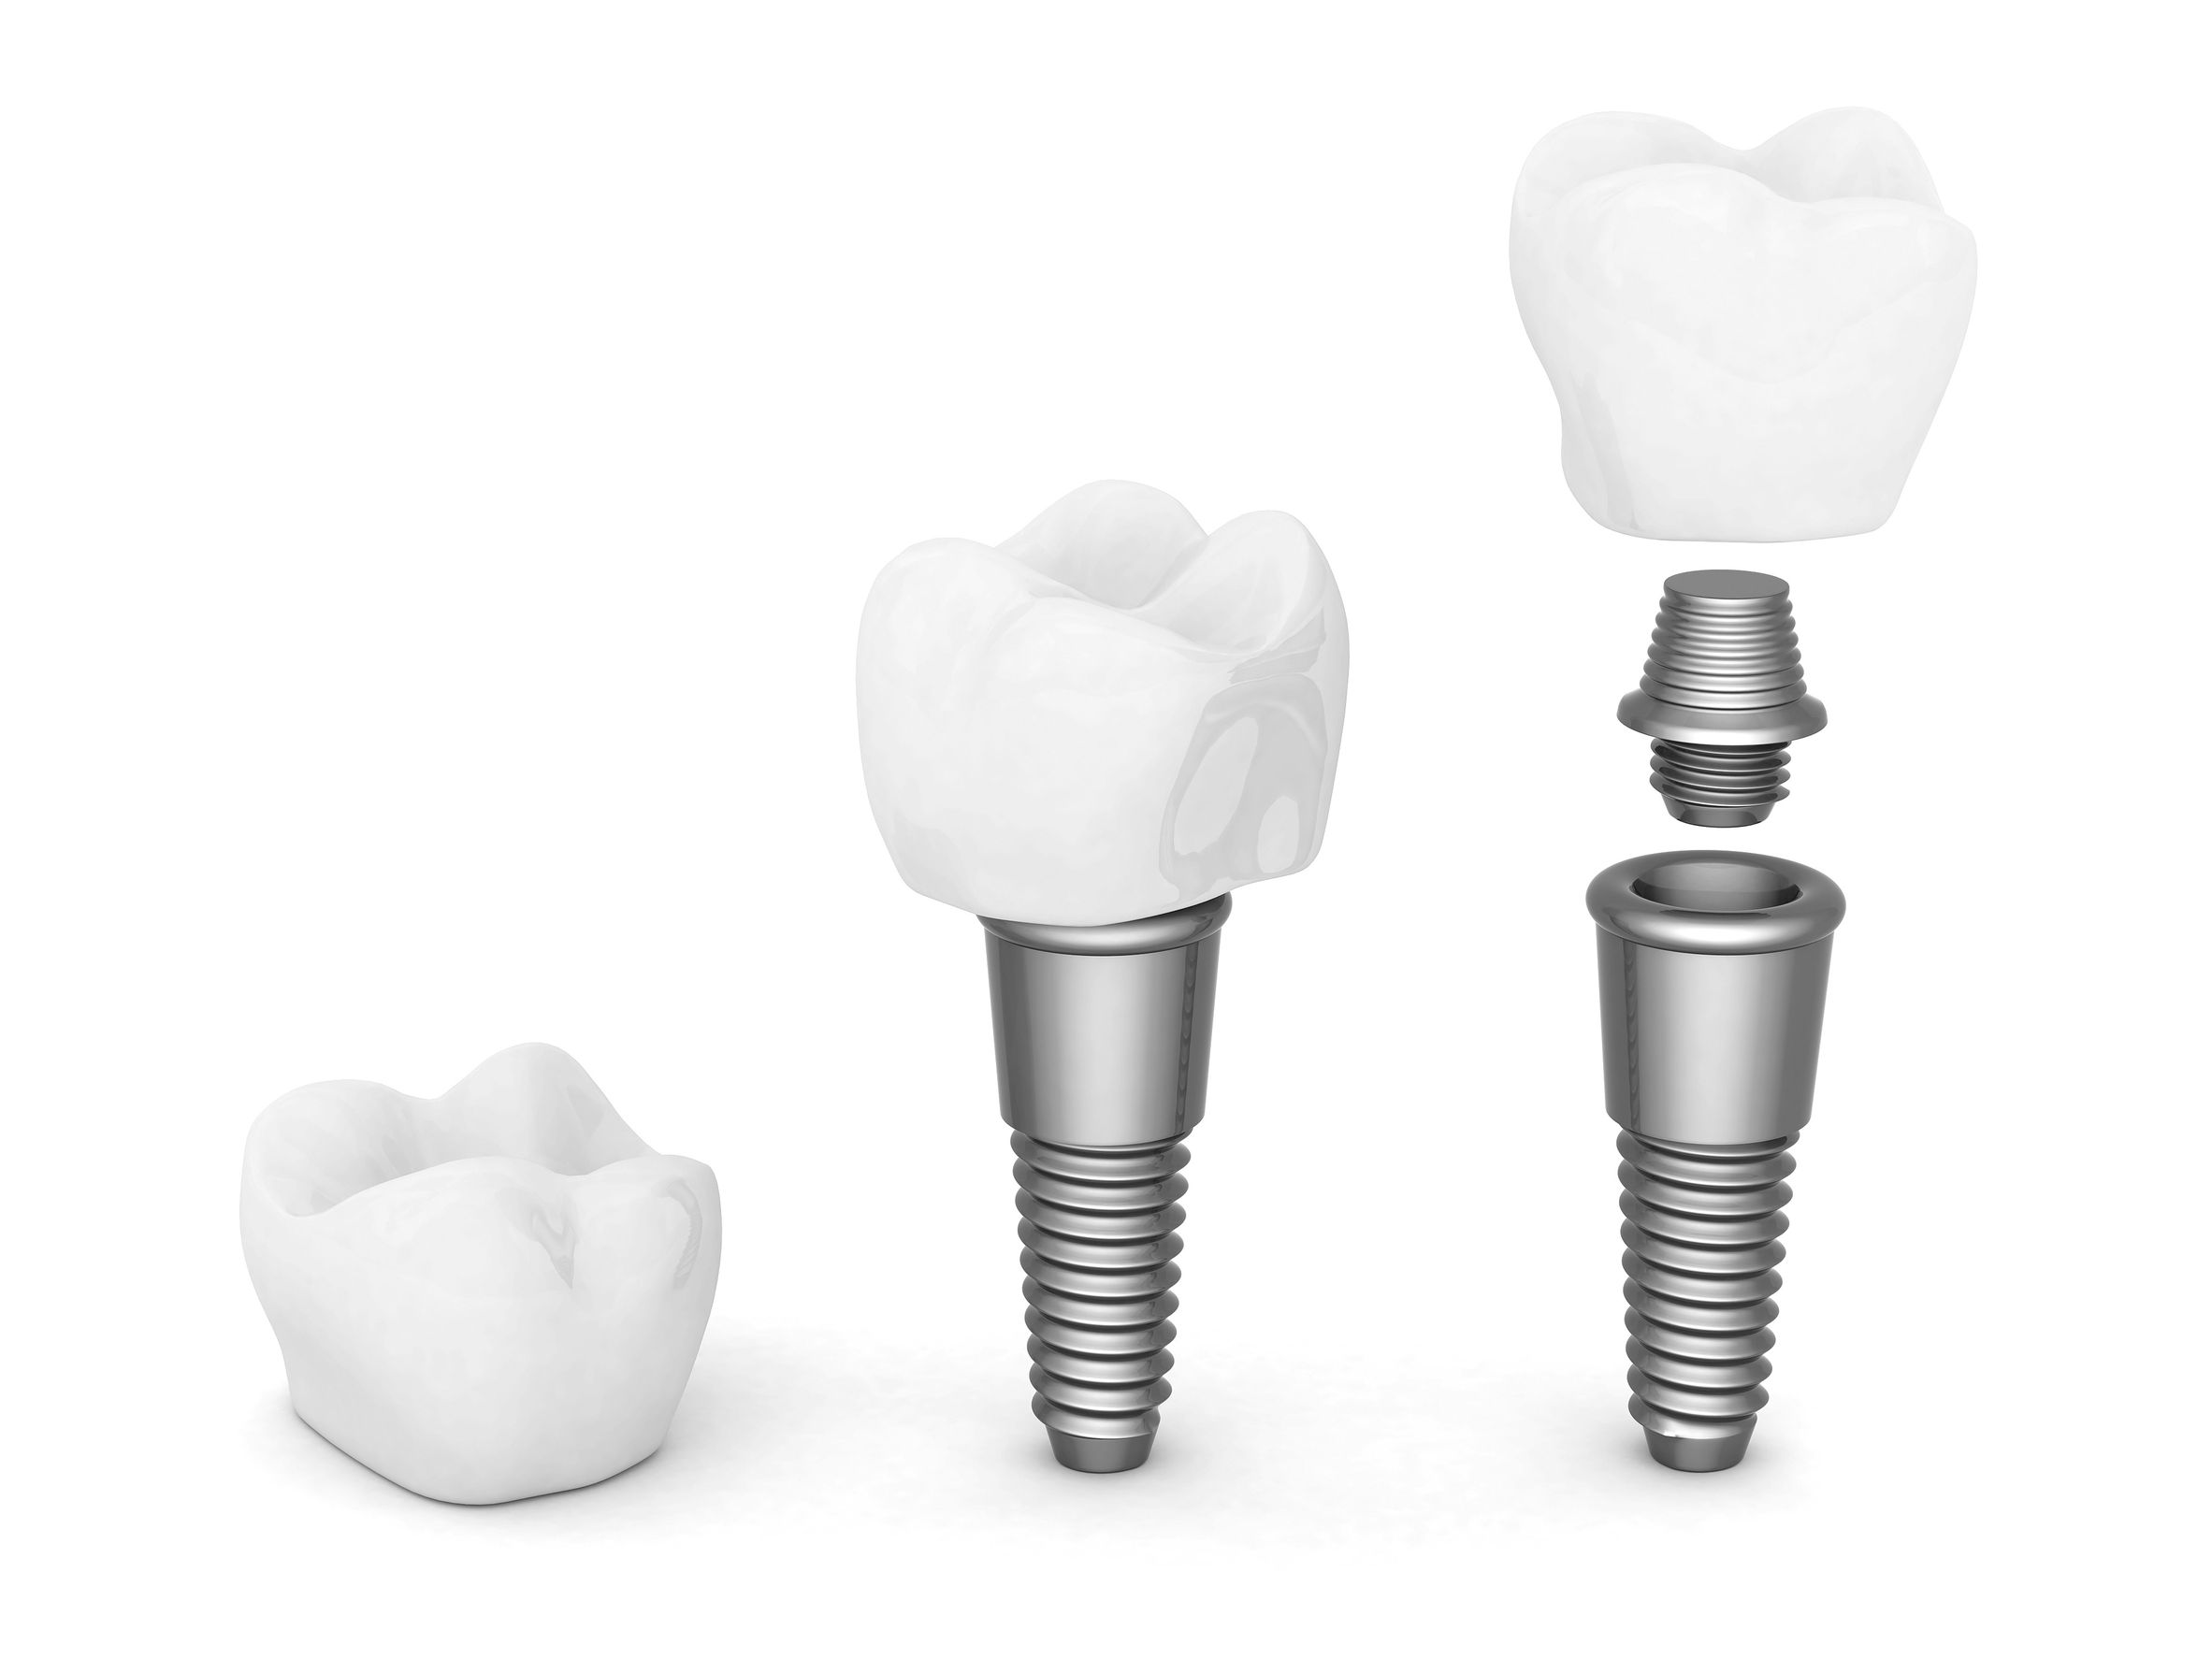 Implants are comprised of 3 components, the implant itself, healing abutment, and restorative crown